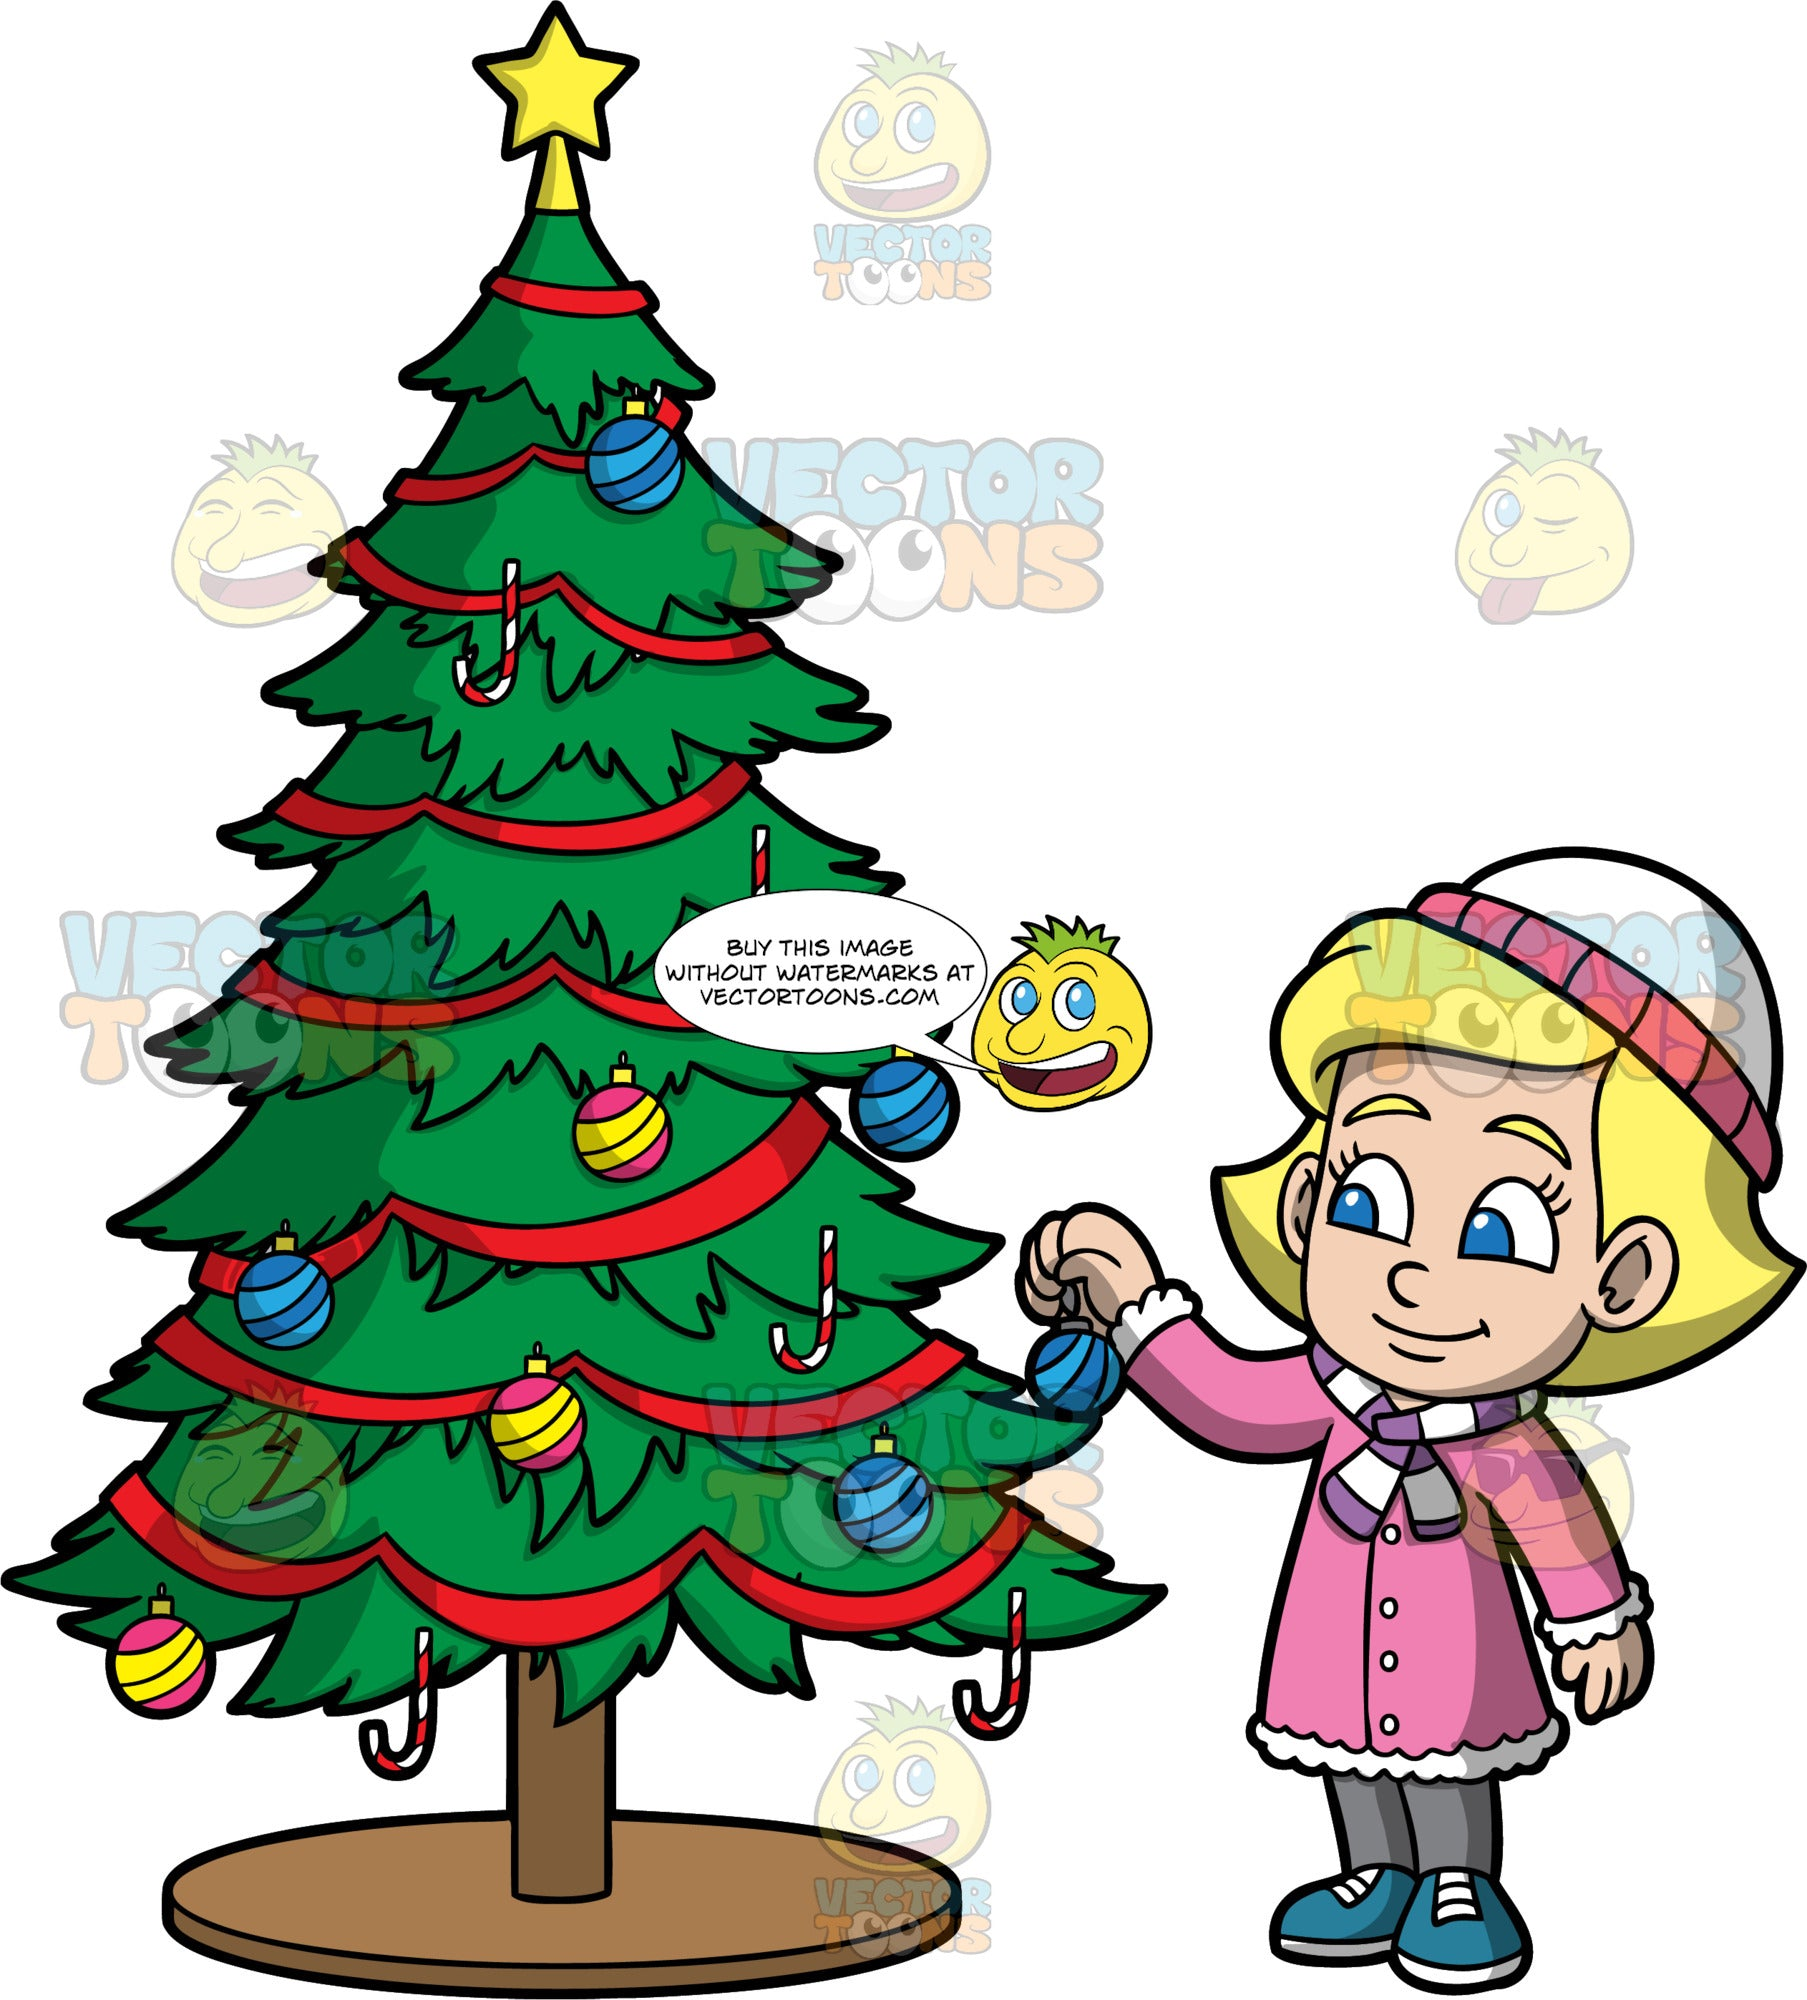 Young Mary Decorating A Christmas Tree. A blonde girl wearing gray pants, a pink coat, a purple and white striped scarf, and a white and pink hat, putting a Christmas ornament on a tree